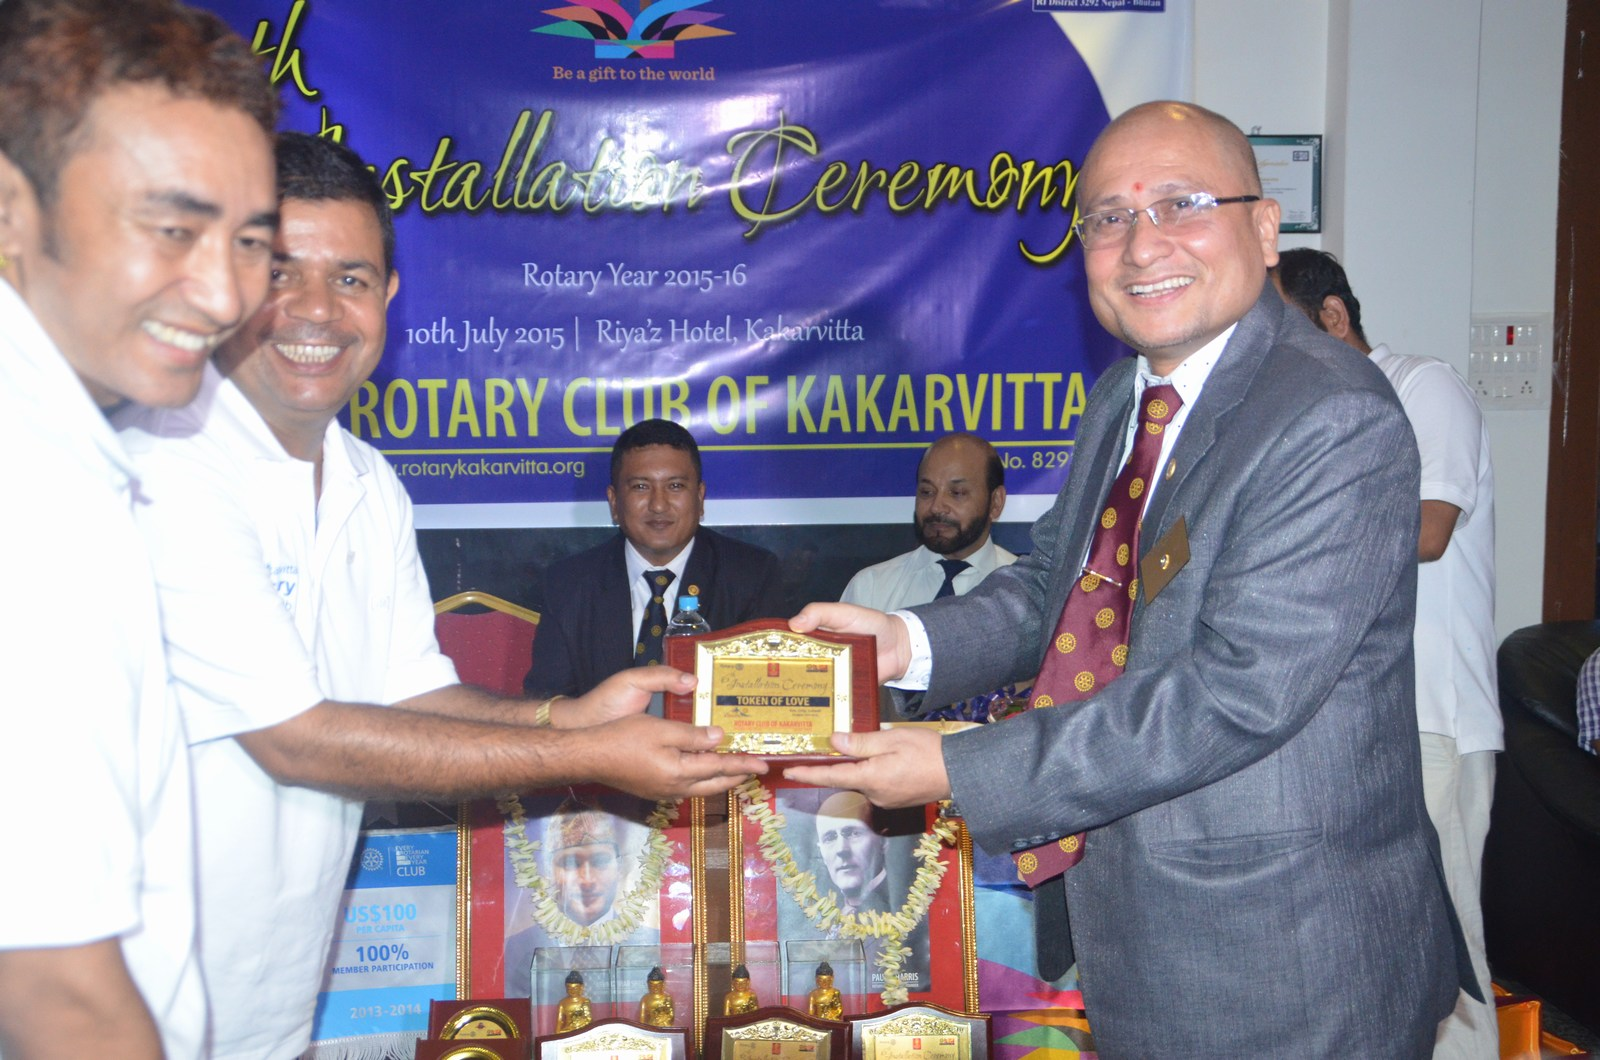 6th Installation Ceremony 2015 16 Rotary Club Of Kakarvitta 21